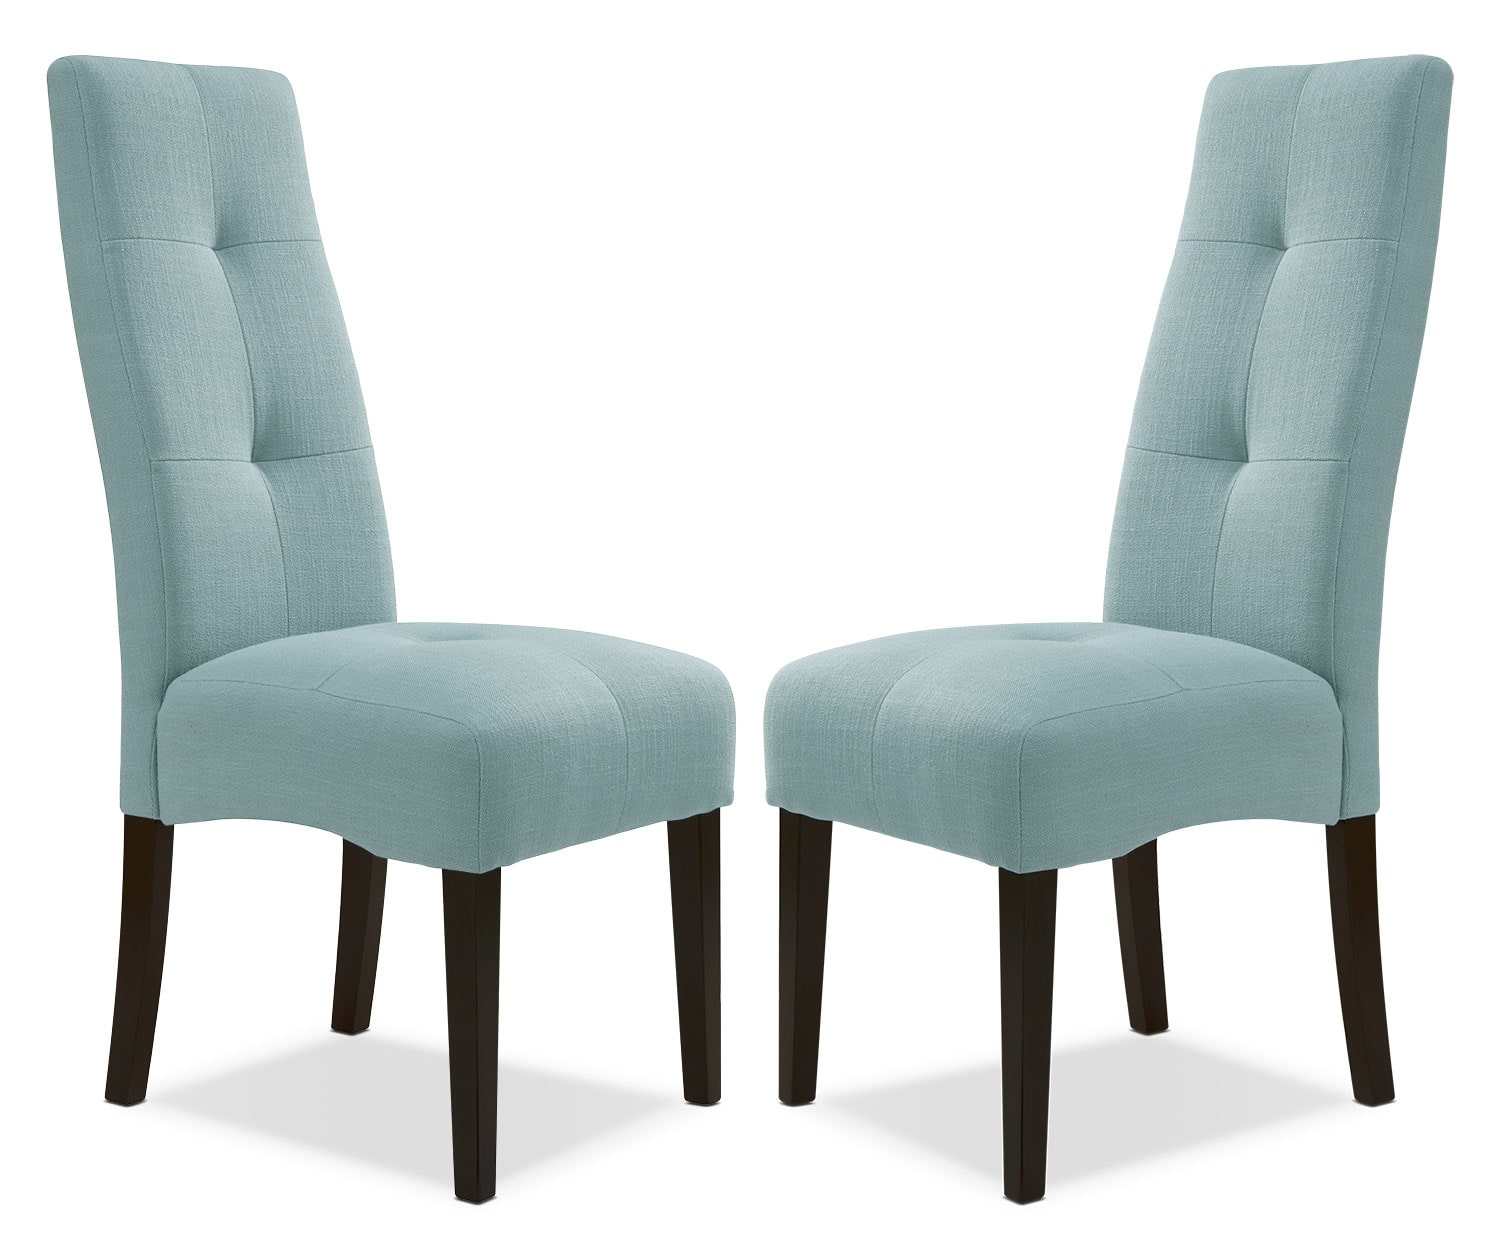 Dining Room Furniture - Sadie Light Blue Dining Chair – Set of 2